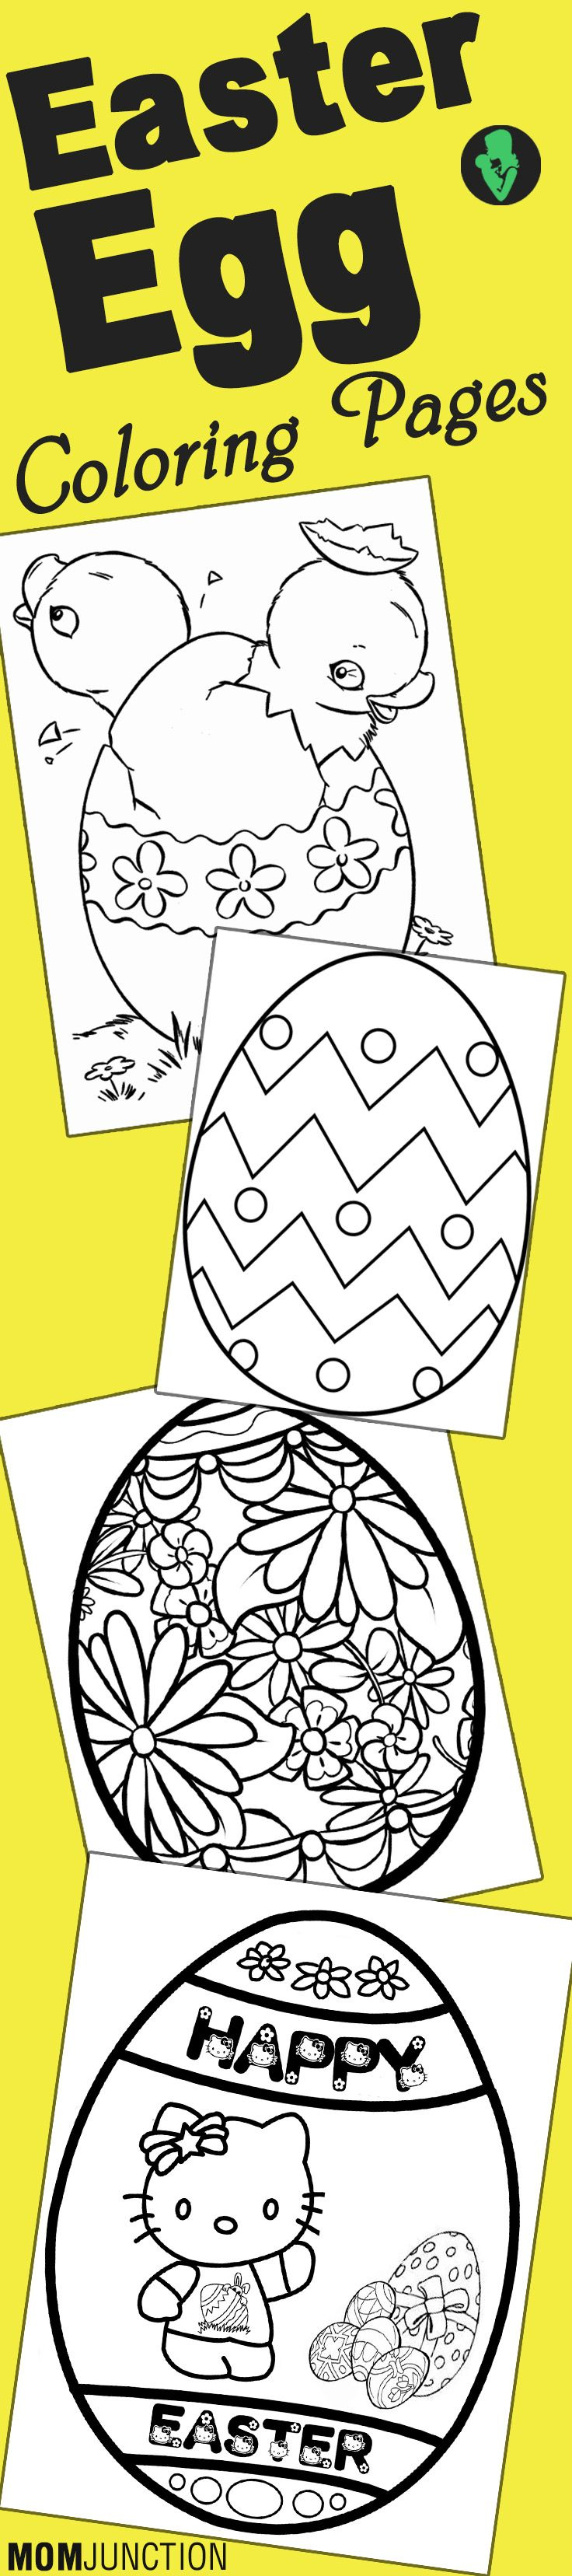 1000 images about Easter printables